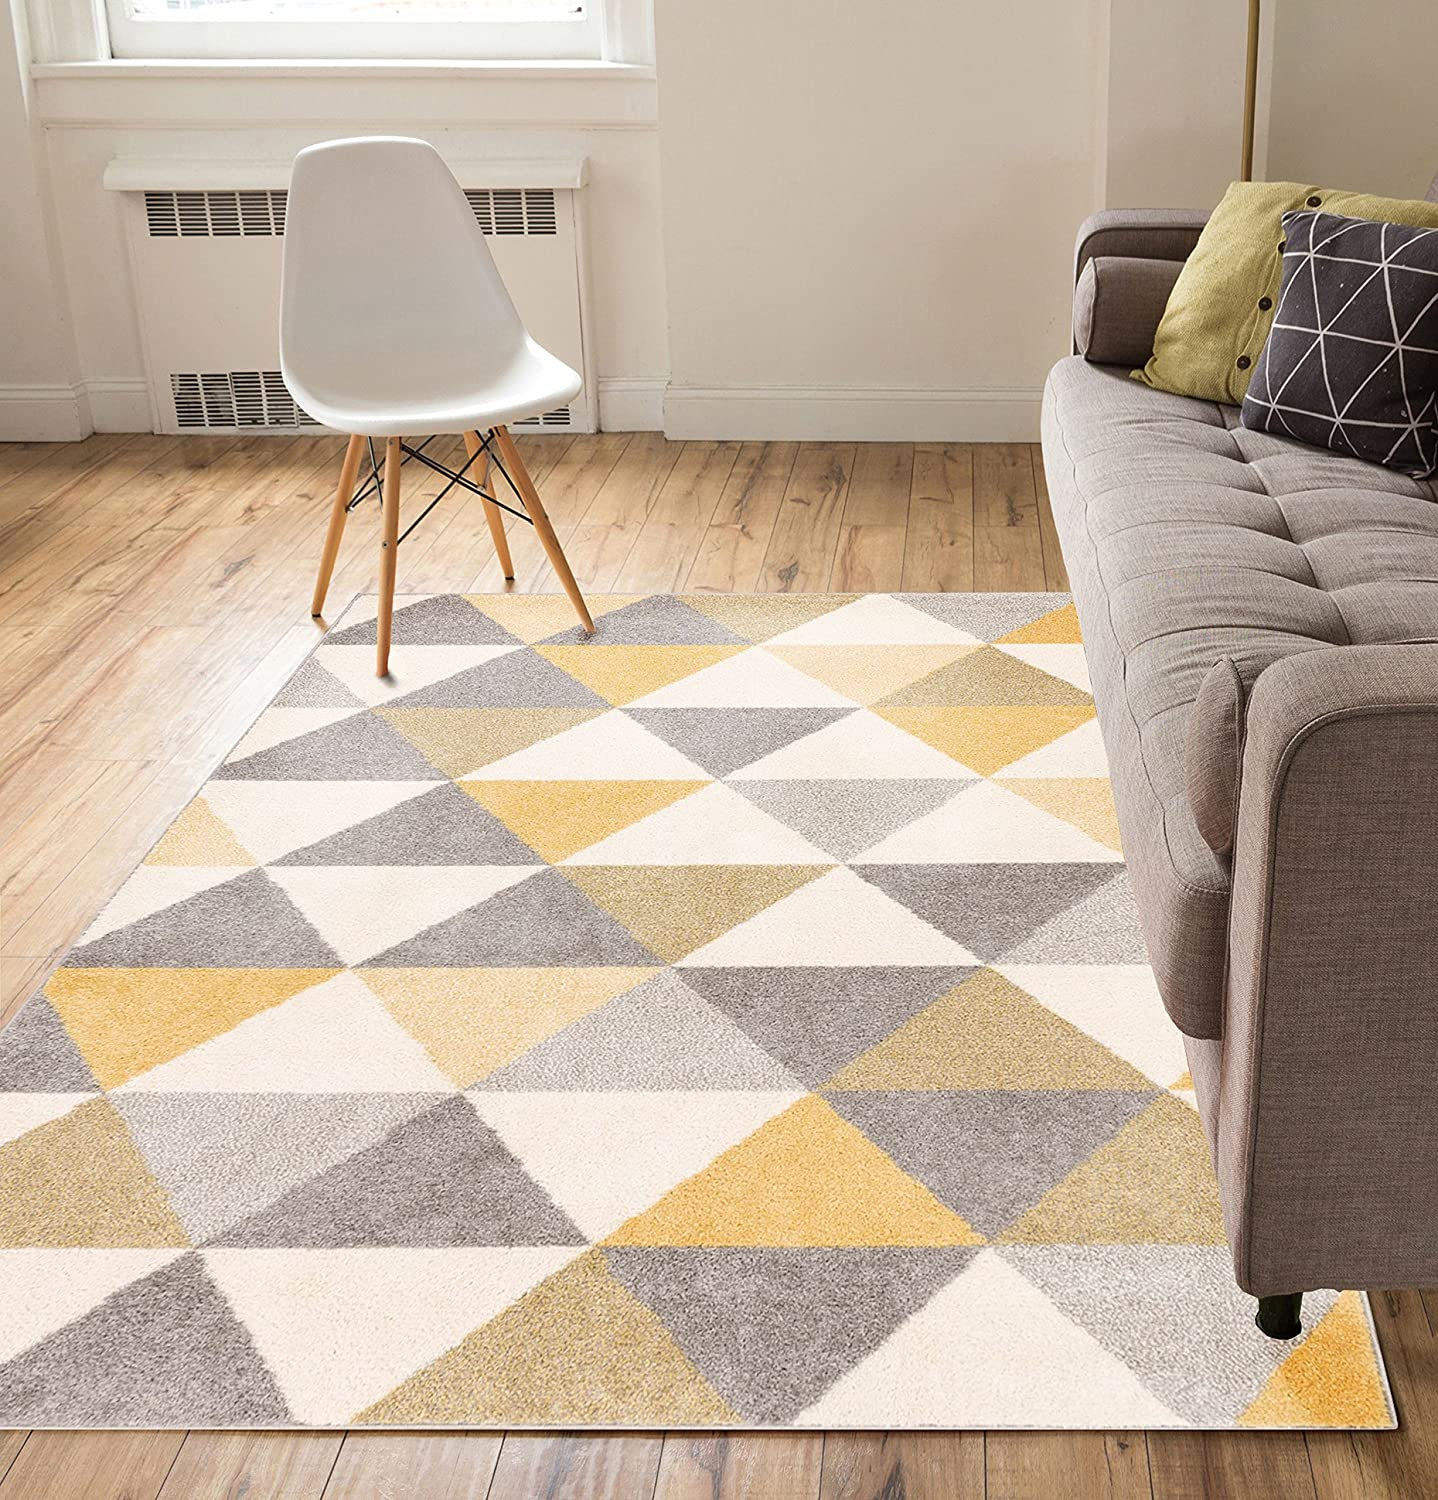 Amazon.com: Well Woven Isometry Gold U0026 Grey Modern Geometric Triangle  Pattern 5u0027 X 7u0027 Area Rug Soft Shed Free Easy To Clean Stain Resistant:  Kitchen U0026 ...